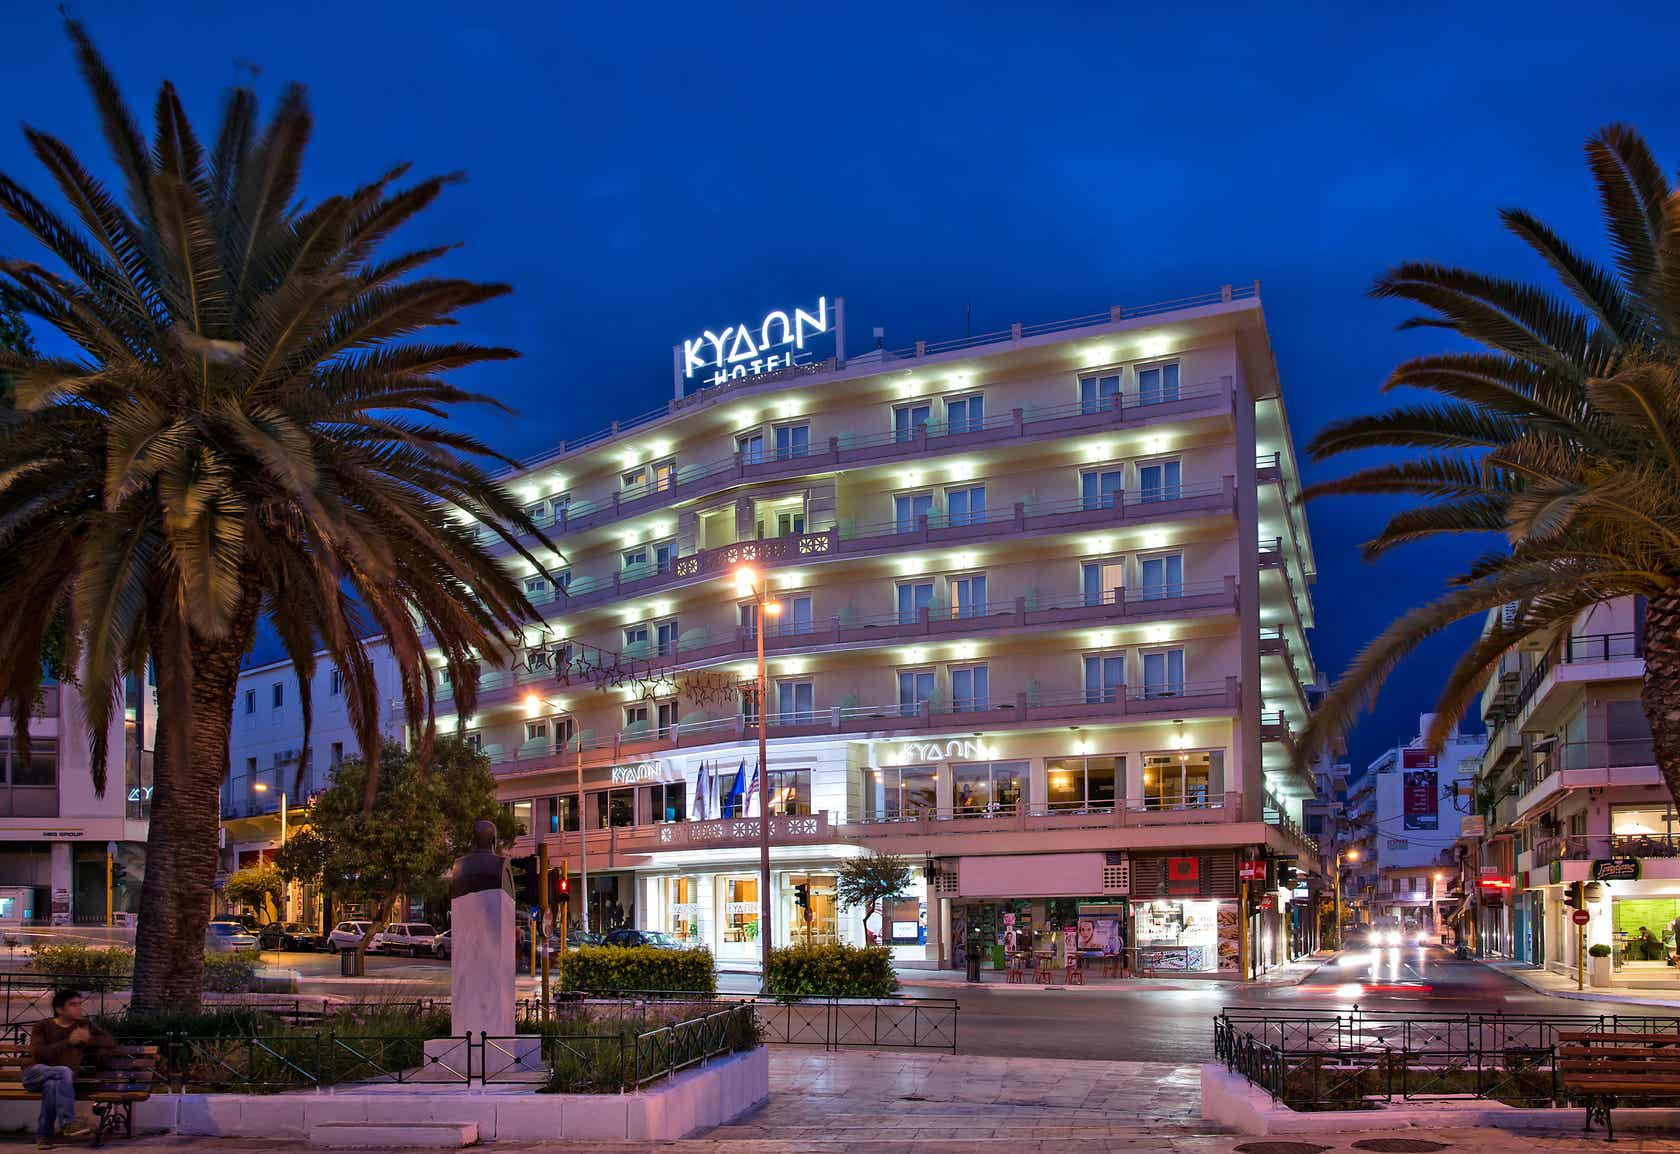 Kydon, The Heart City Hotel